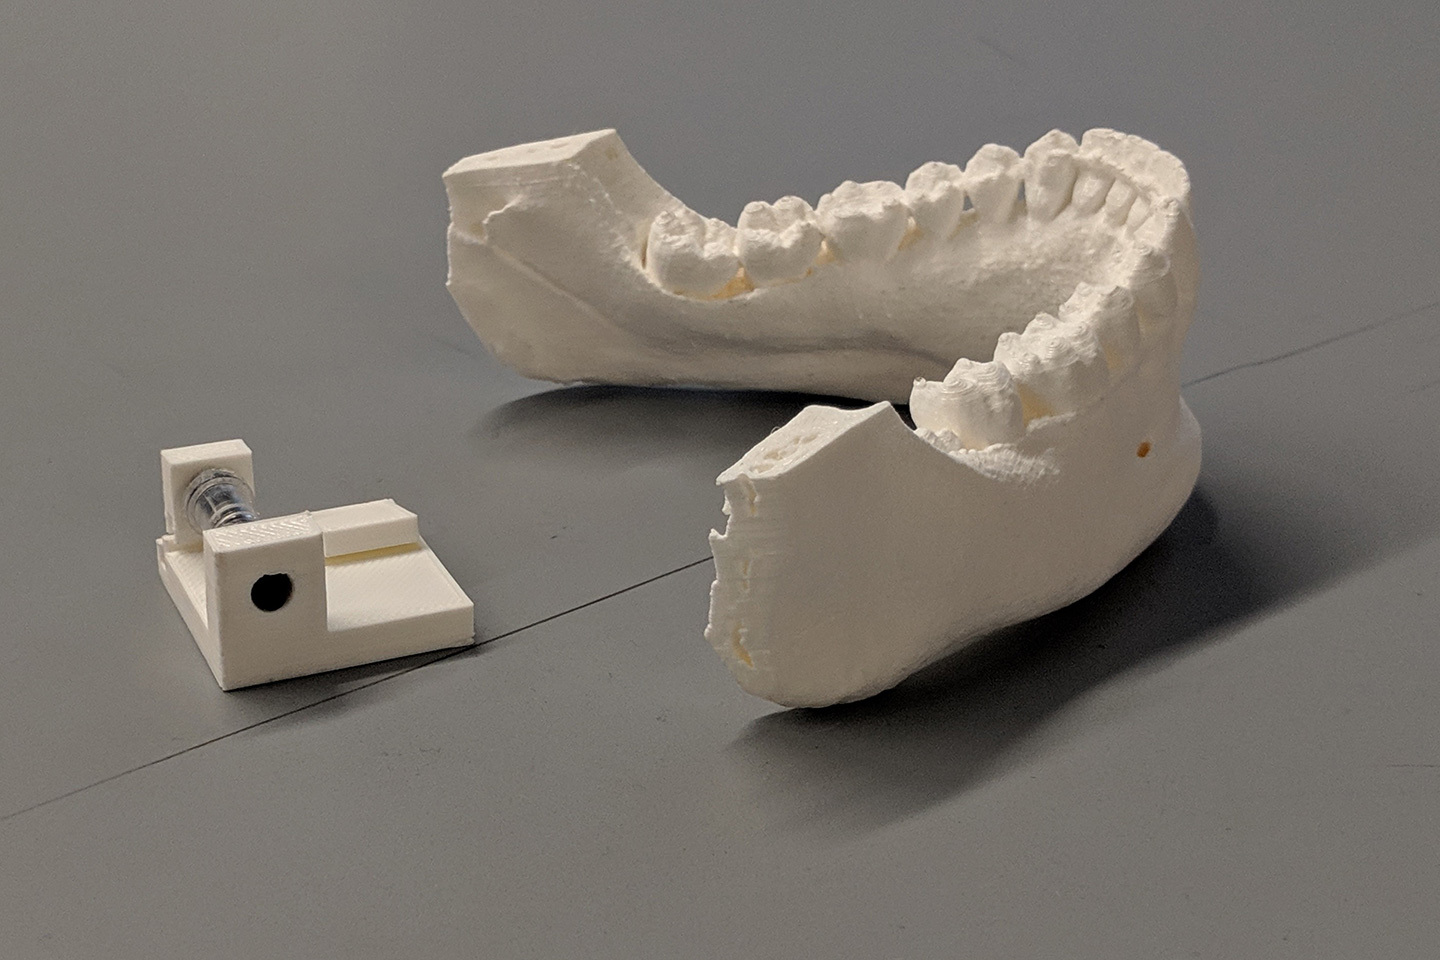 A prototype of a mouthguard to assist with treating epilepsy.